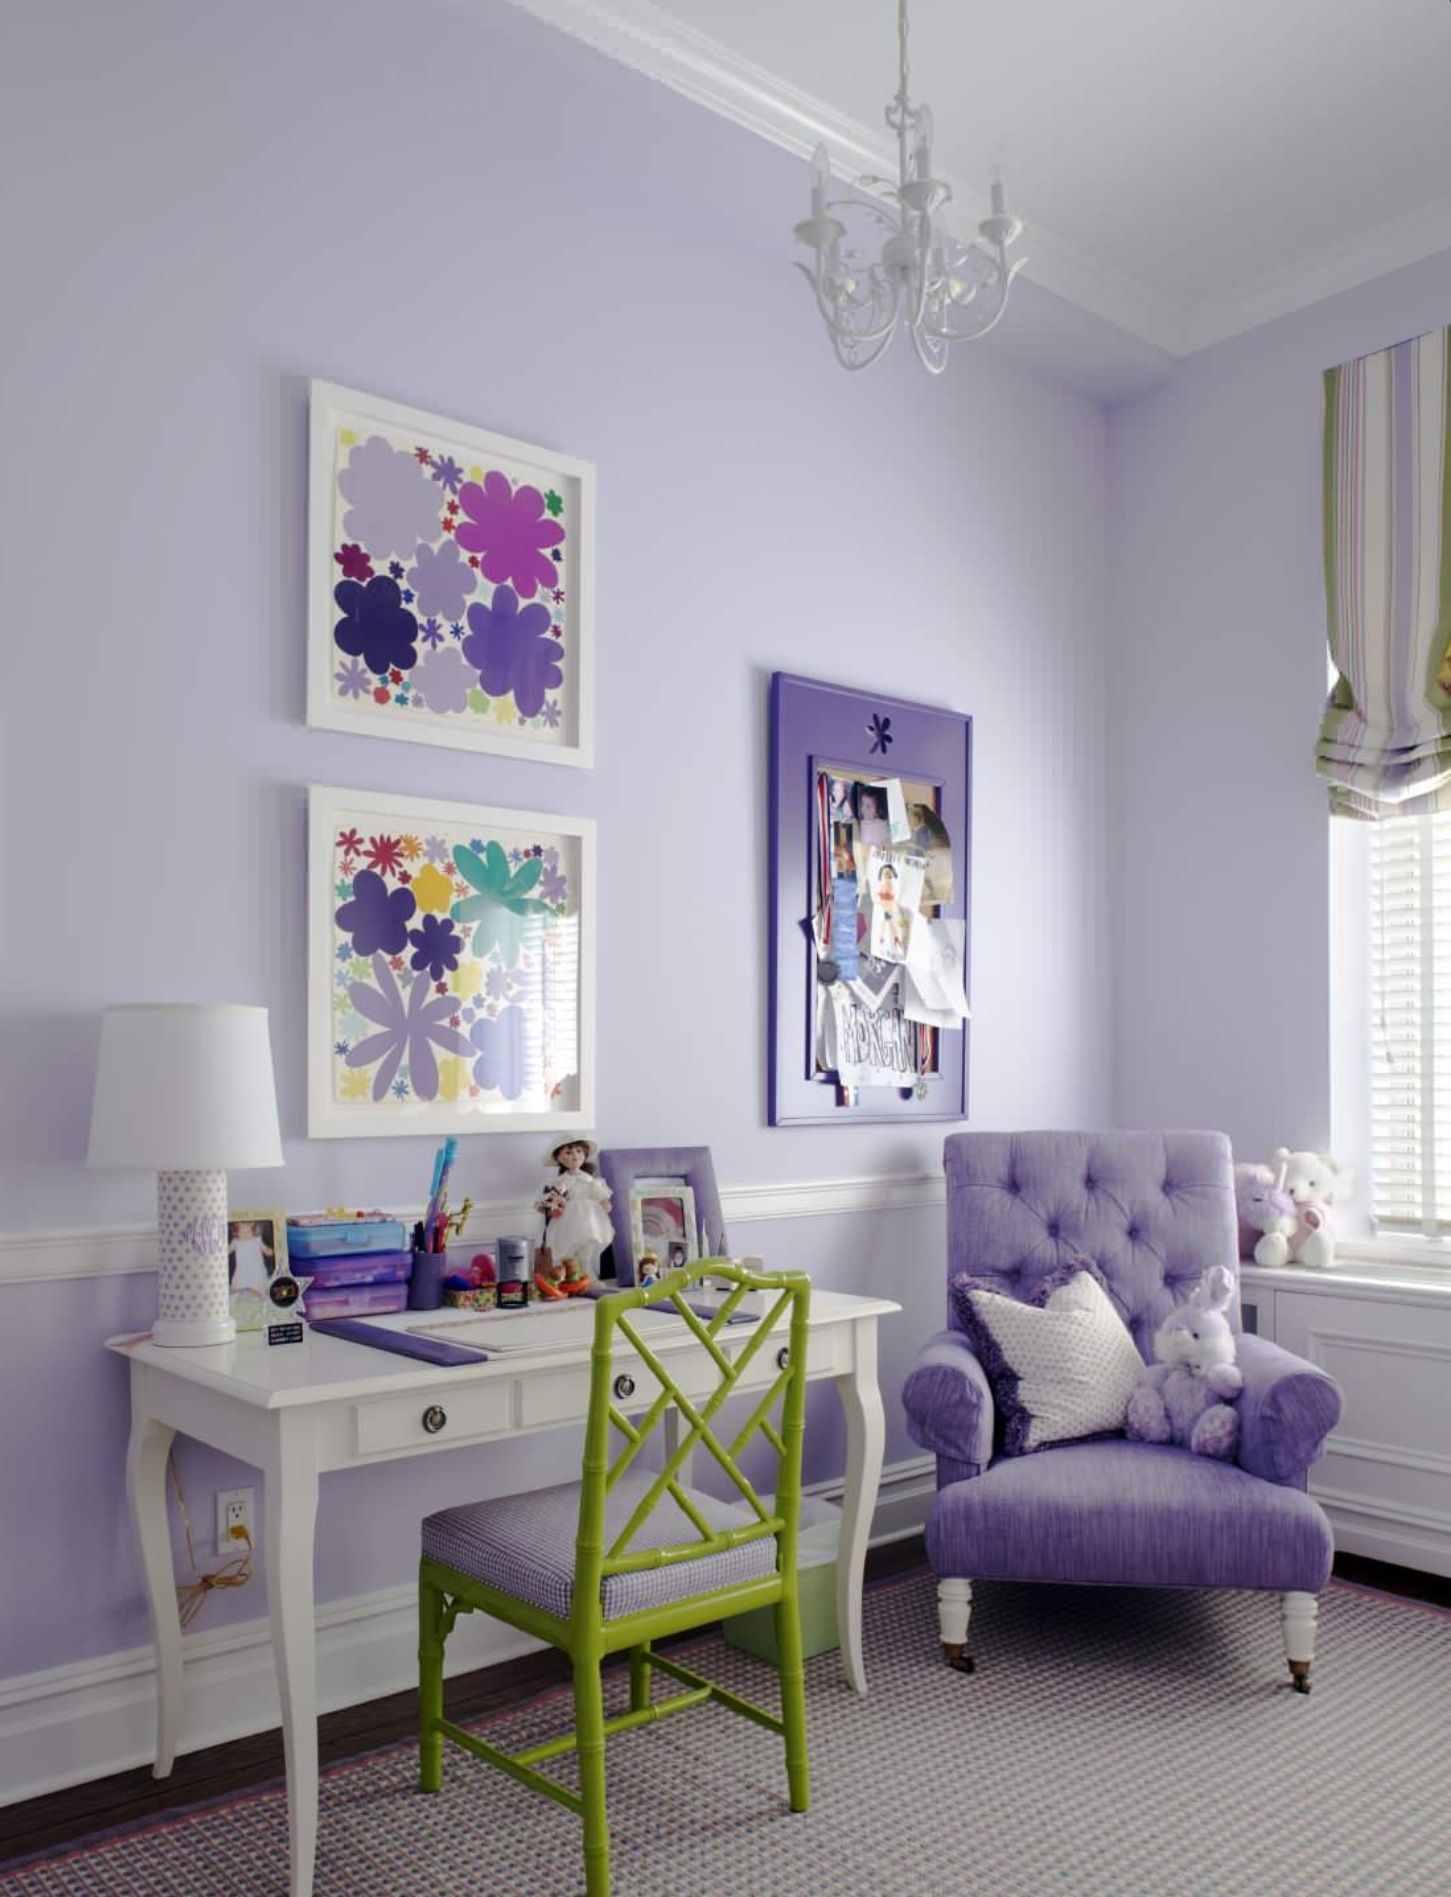 Room Ideas With Purplefor Teen Girls 2019 Spruce Up Your Bedroom With Pantone's 2015 Color Palette in 2019